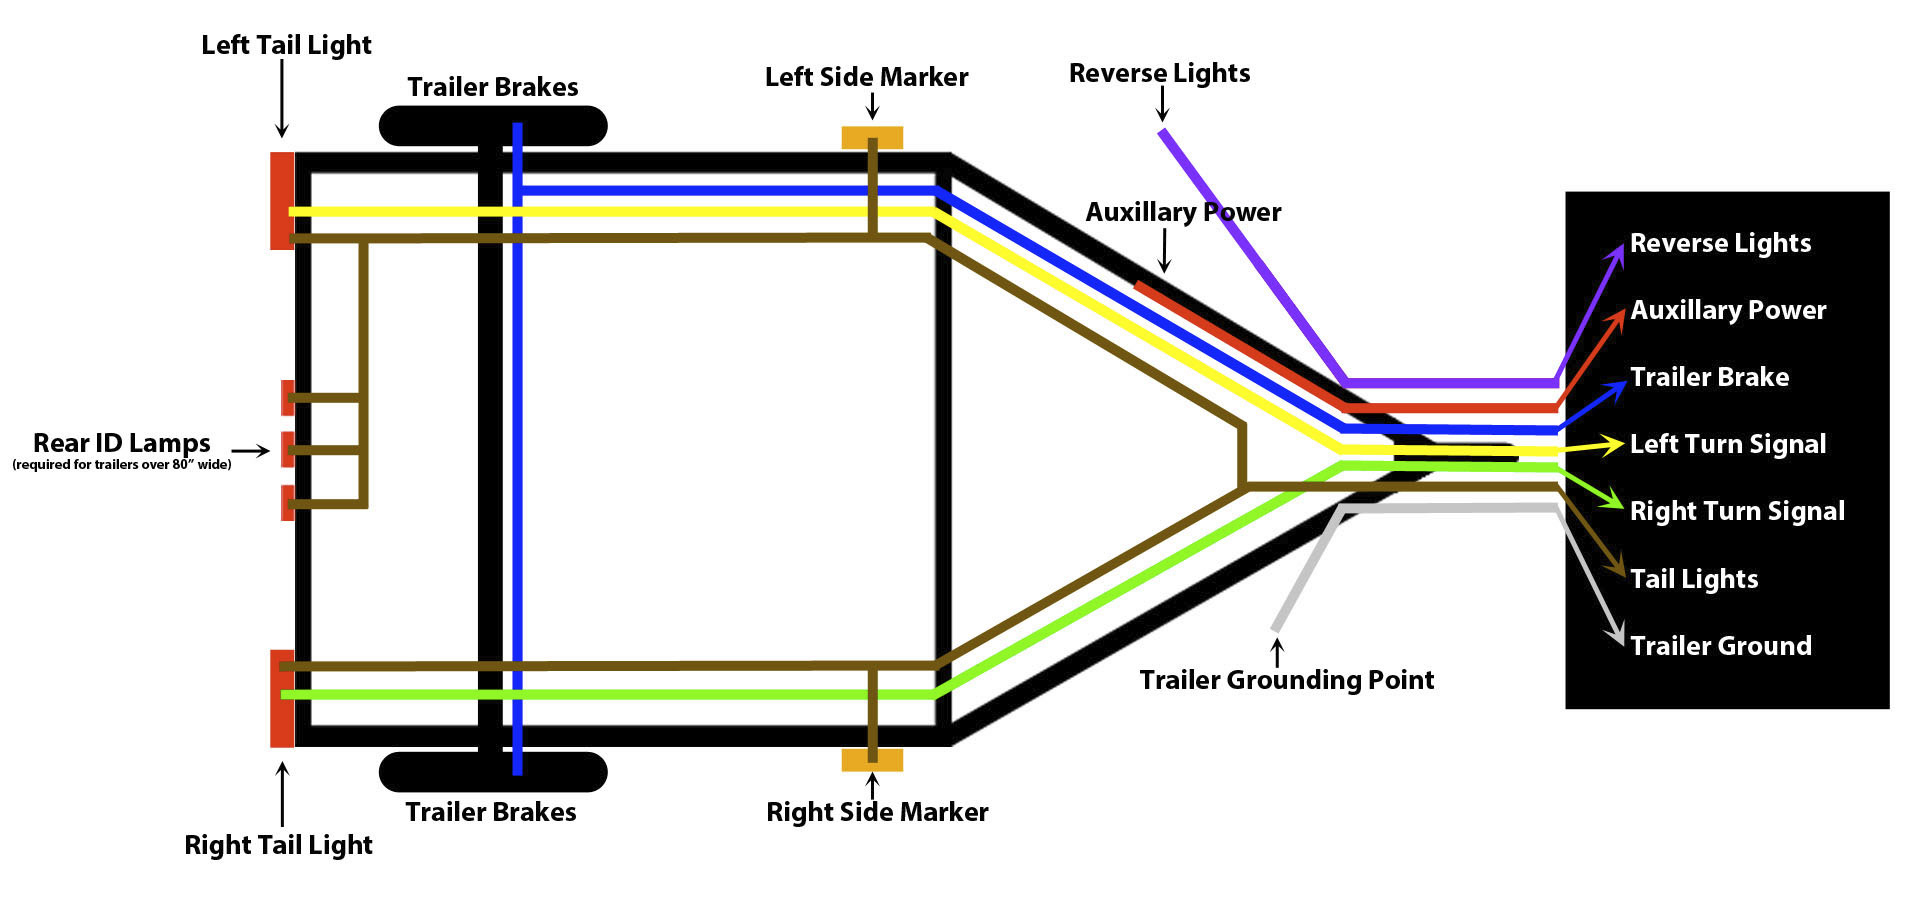 How To Wire Trailer Lights - Trailer Wiring Guide & Videos - 4 Wire Trailer Light Wiring Diagram